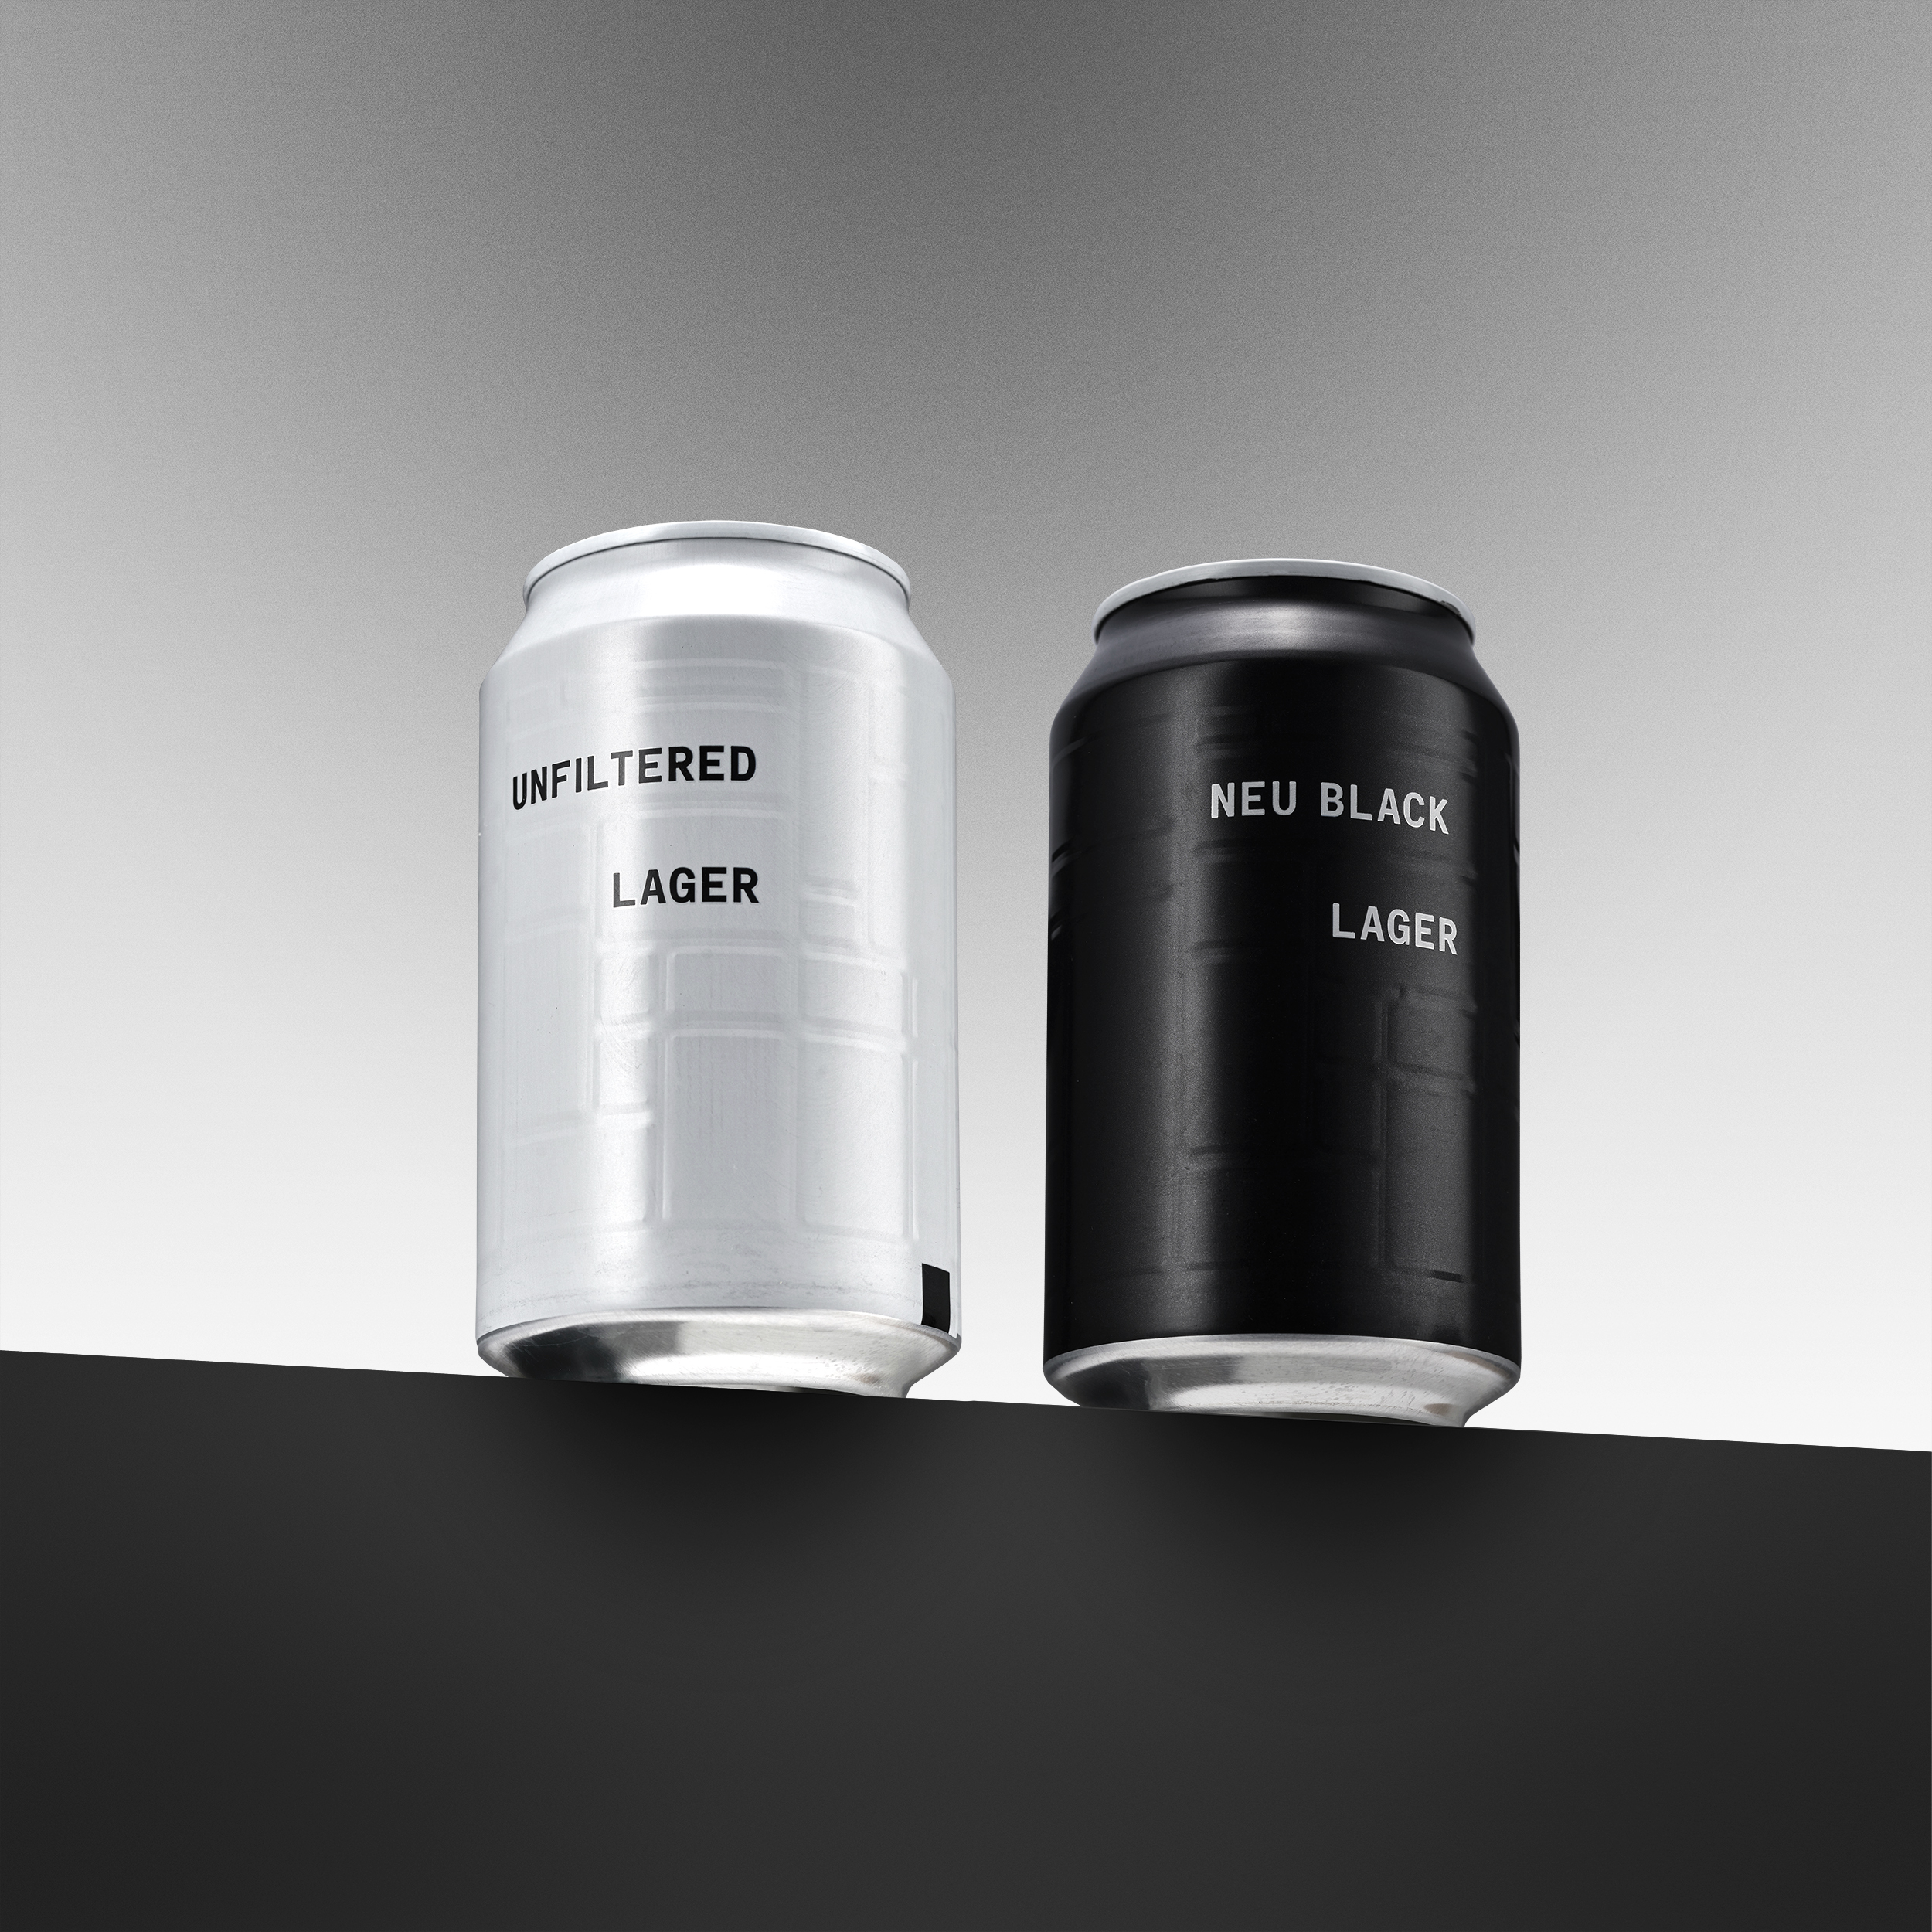 And Union beer cans. Photo by Adam Gasson / adamgasson.com